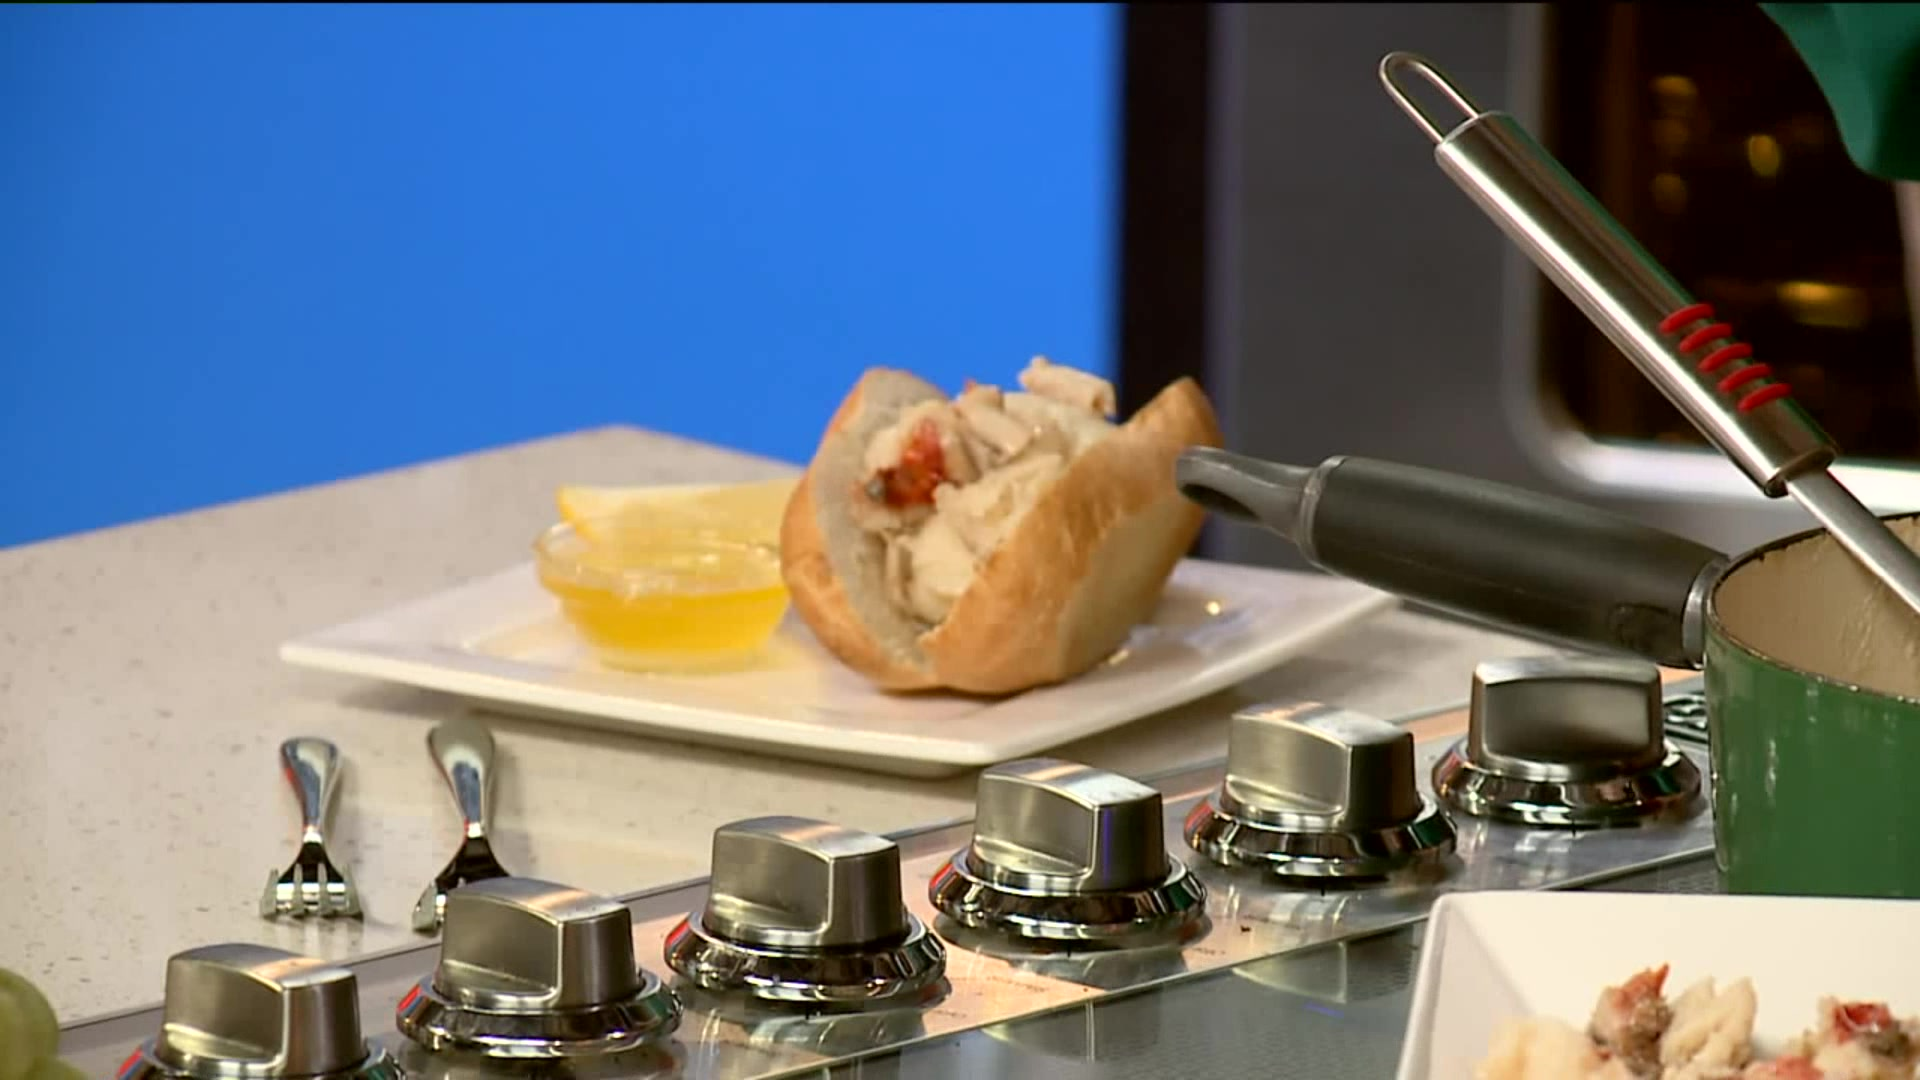 How To Make 5 Minute Lobster Rolls